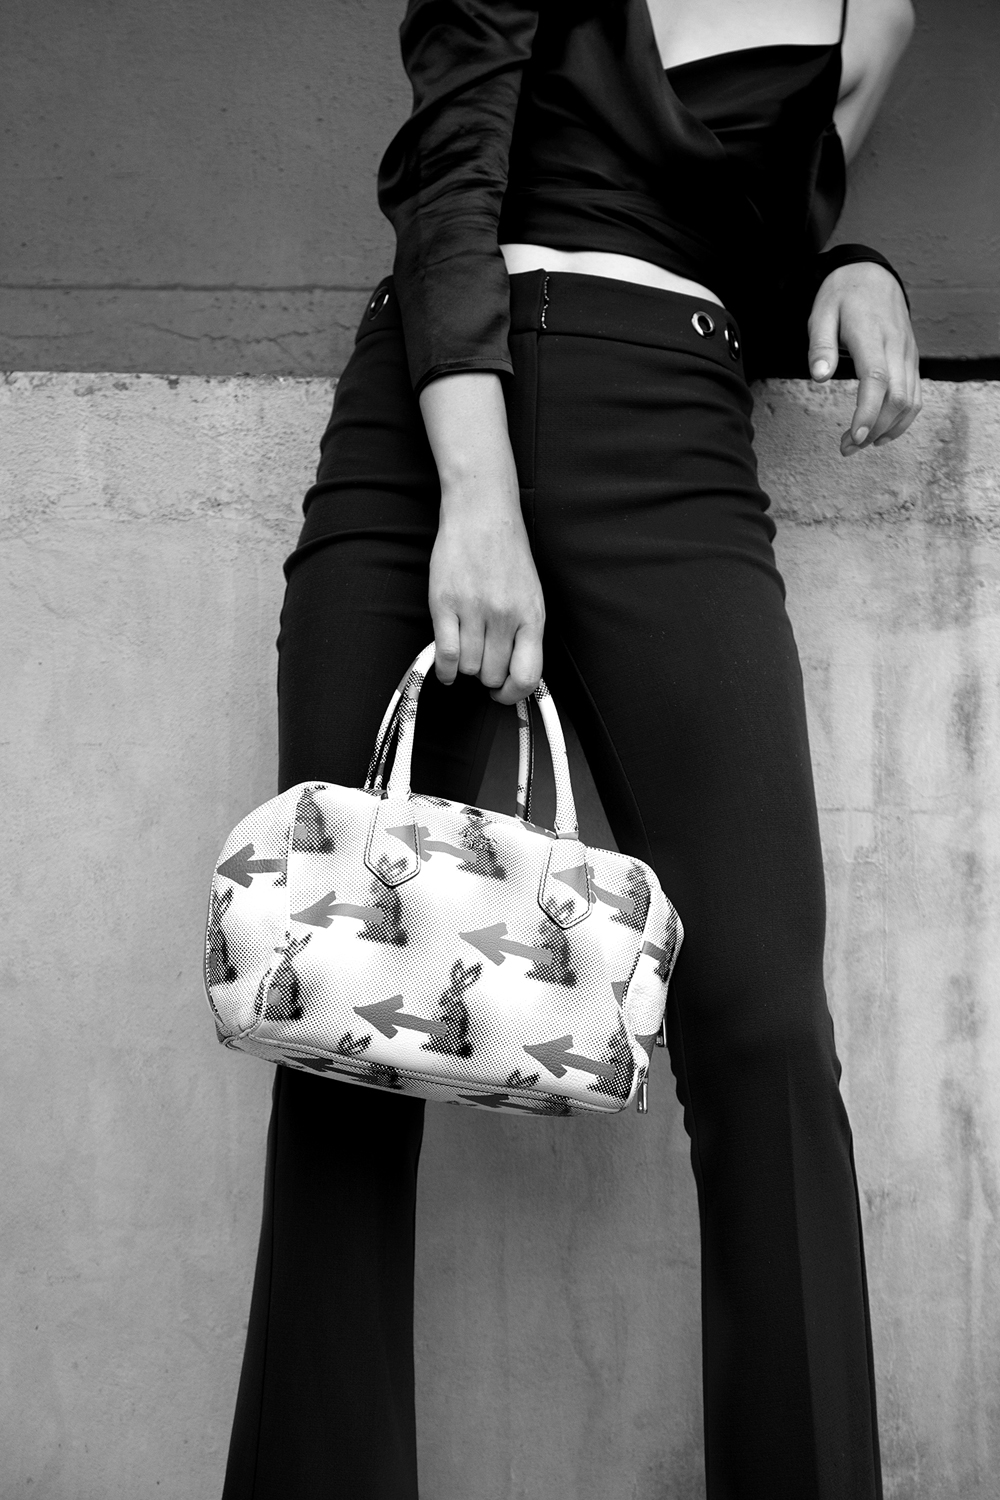 Emily Rink Photographed by Adam Bryce and Styled By Chloe Hill for Oyster Mag Feat Prada Resort 2015 bag